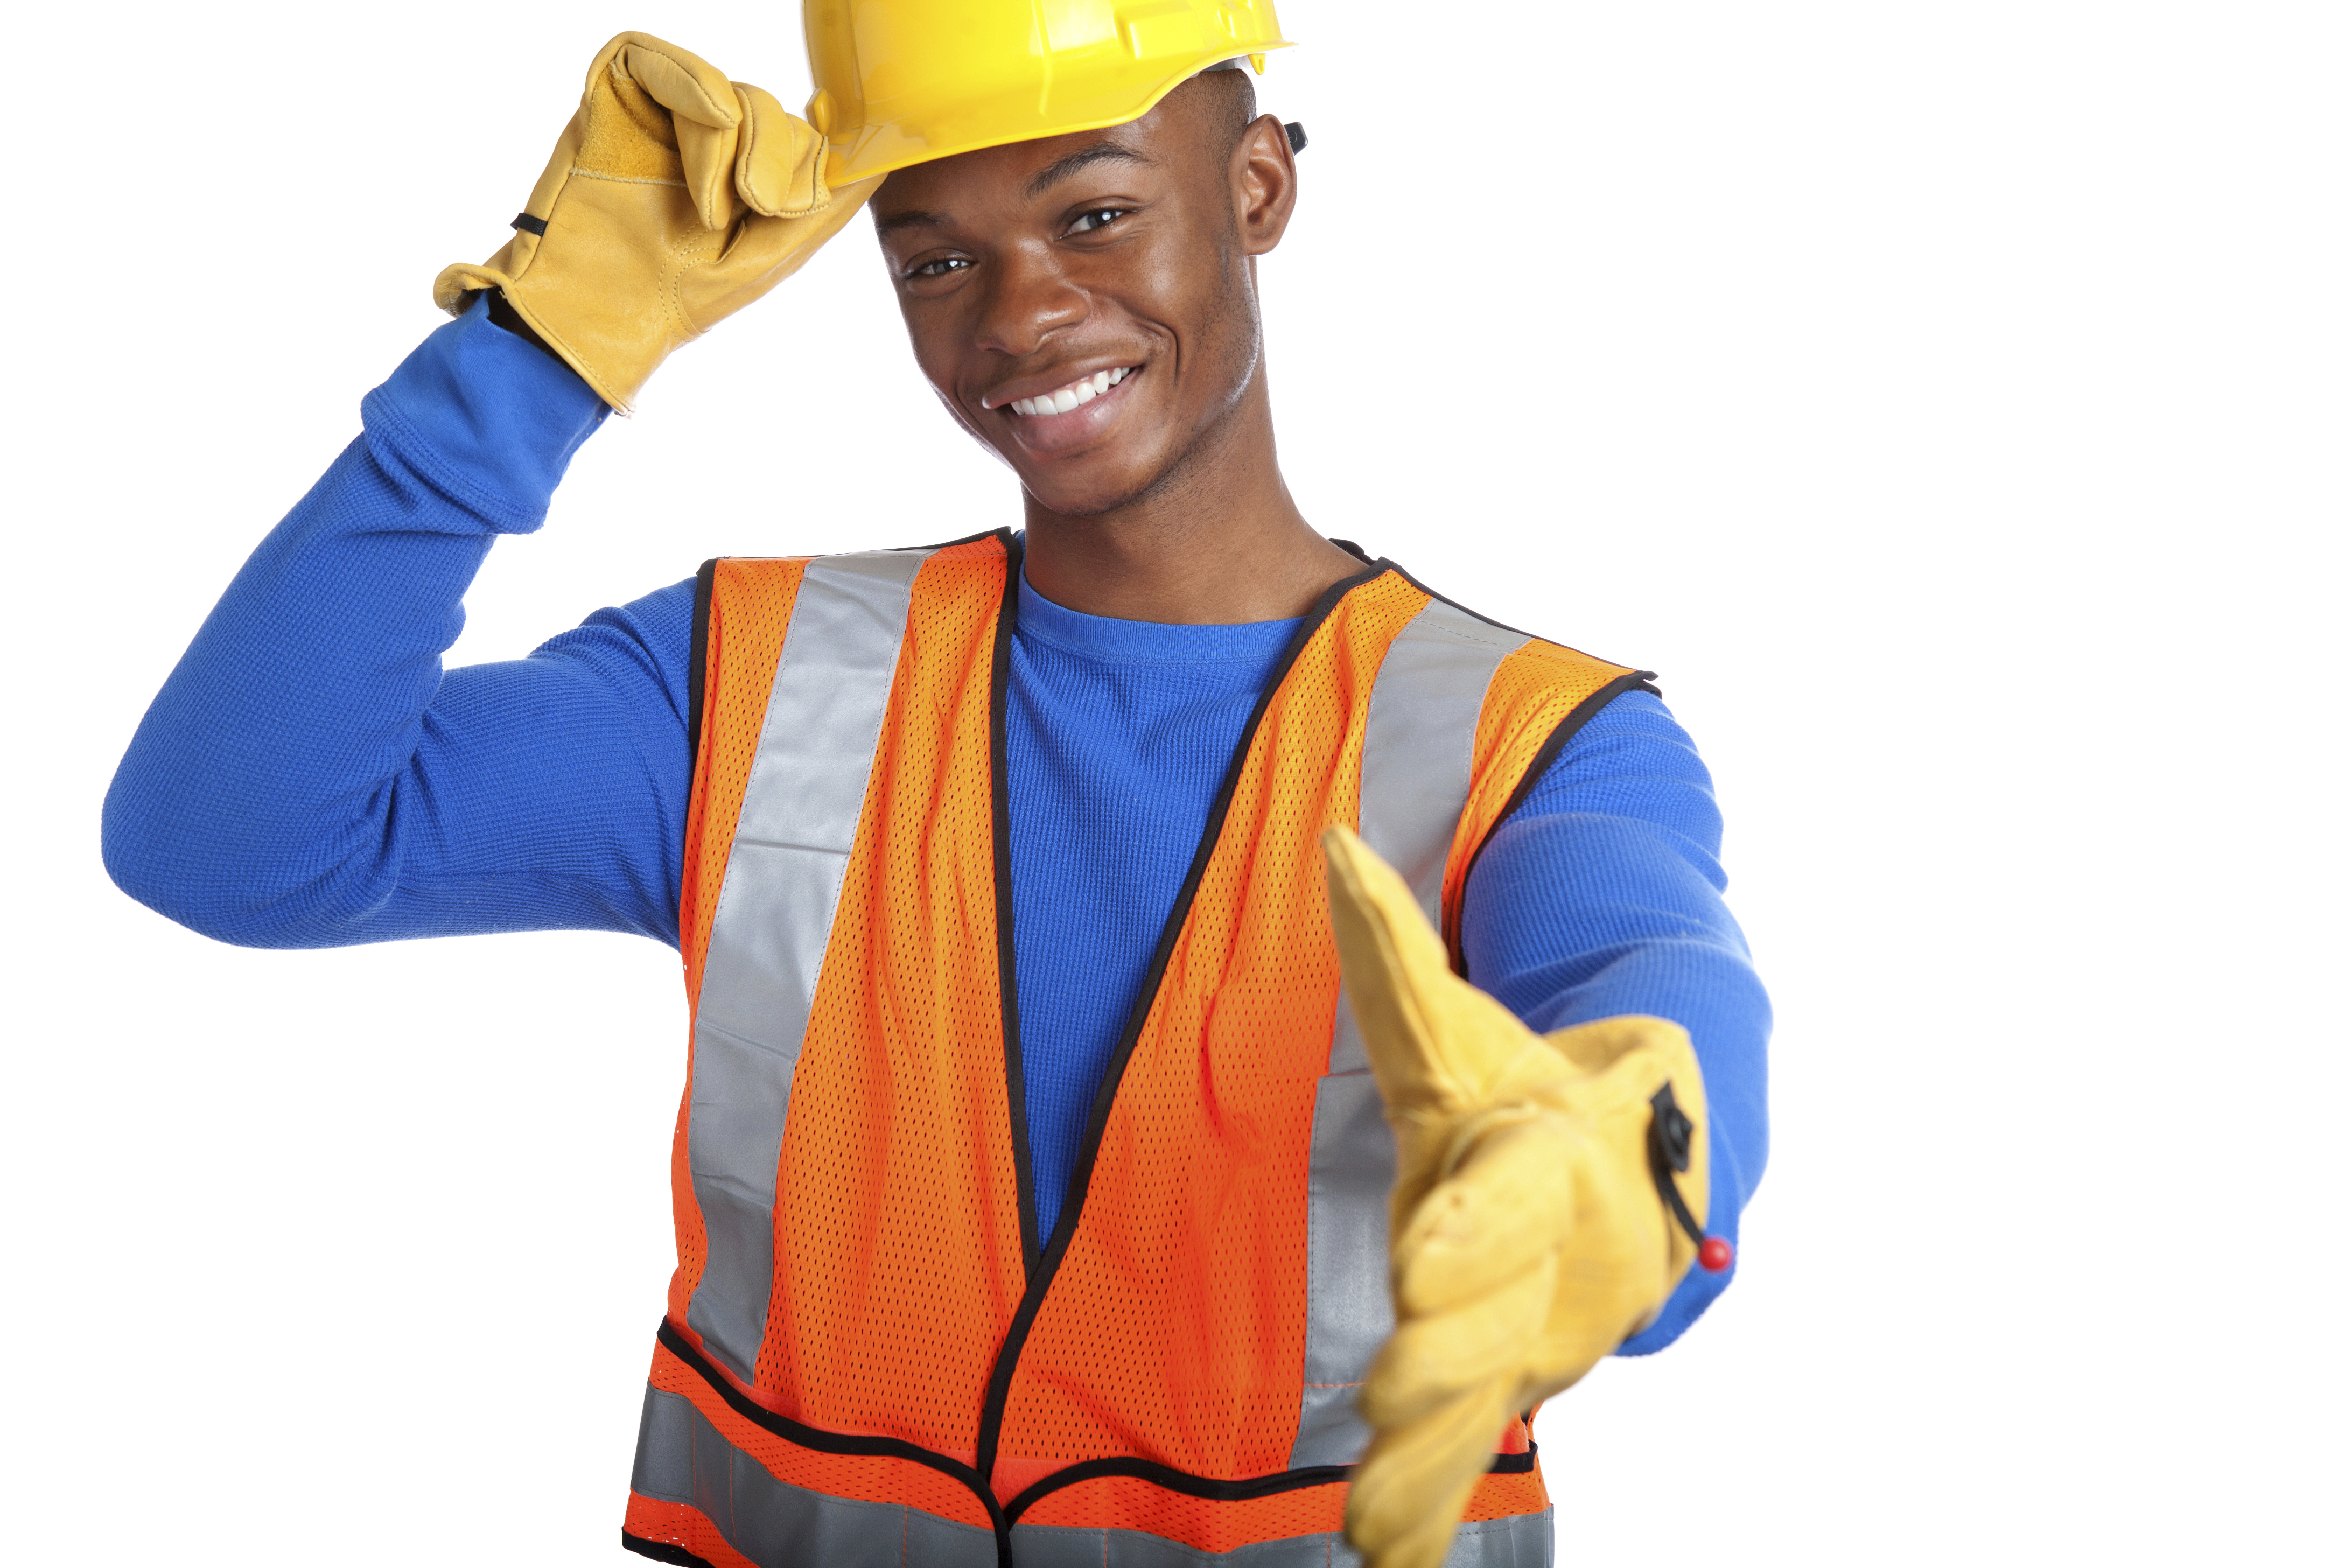 African-American male construction worker shaking hand